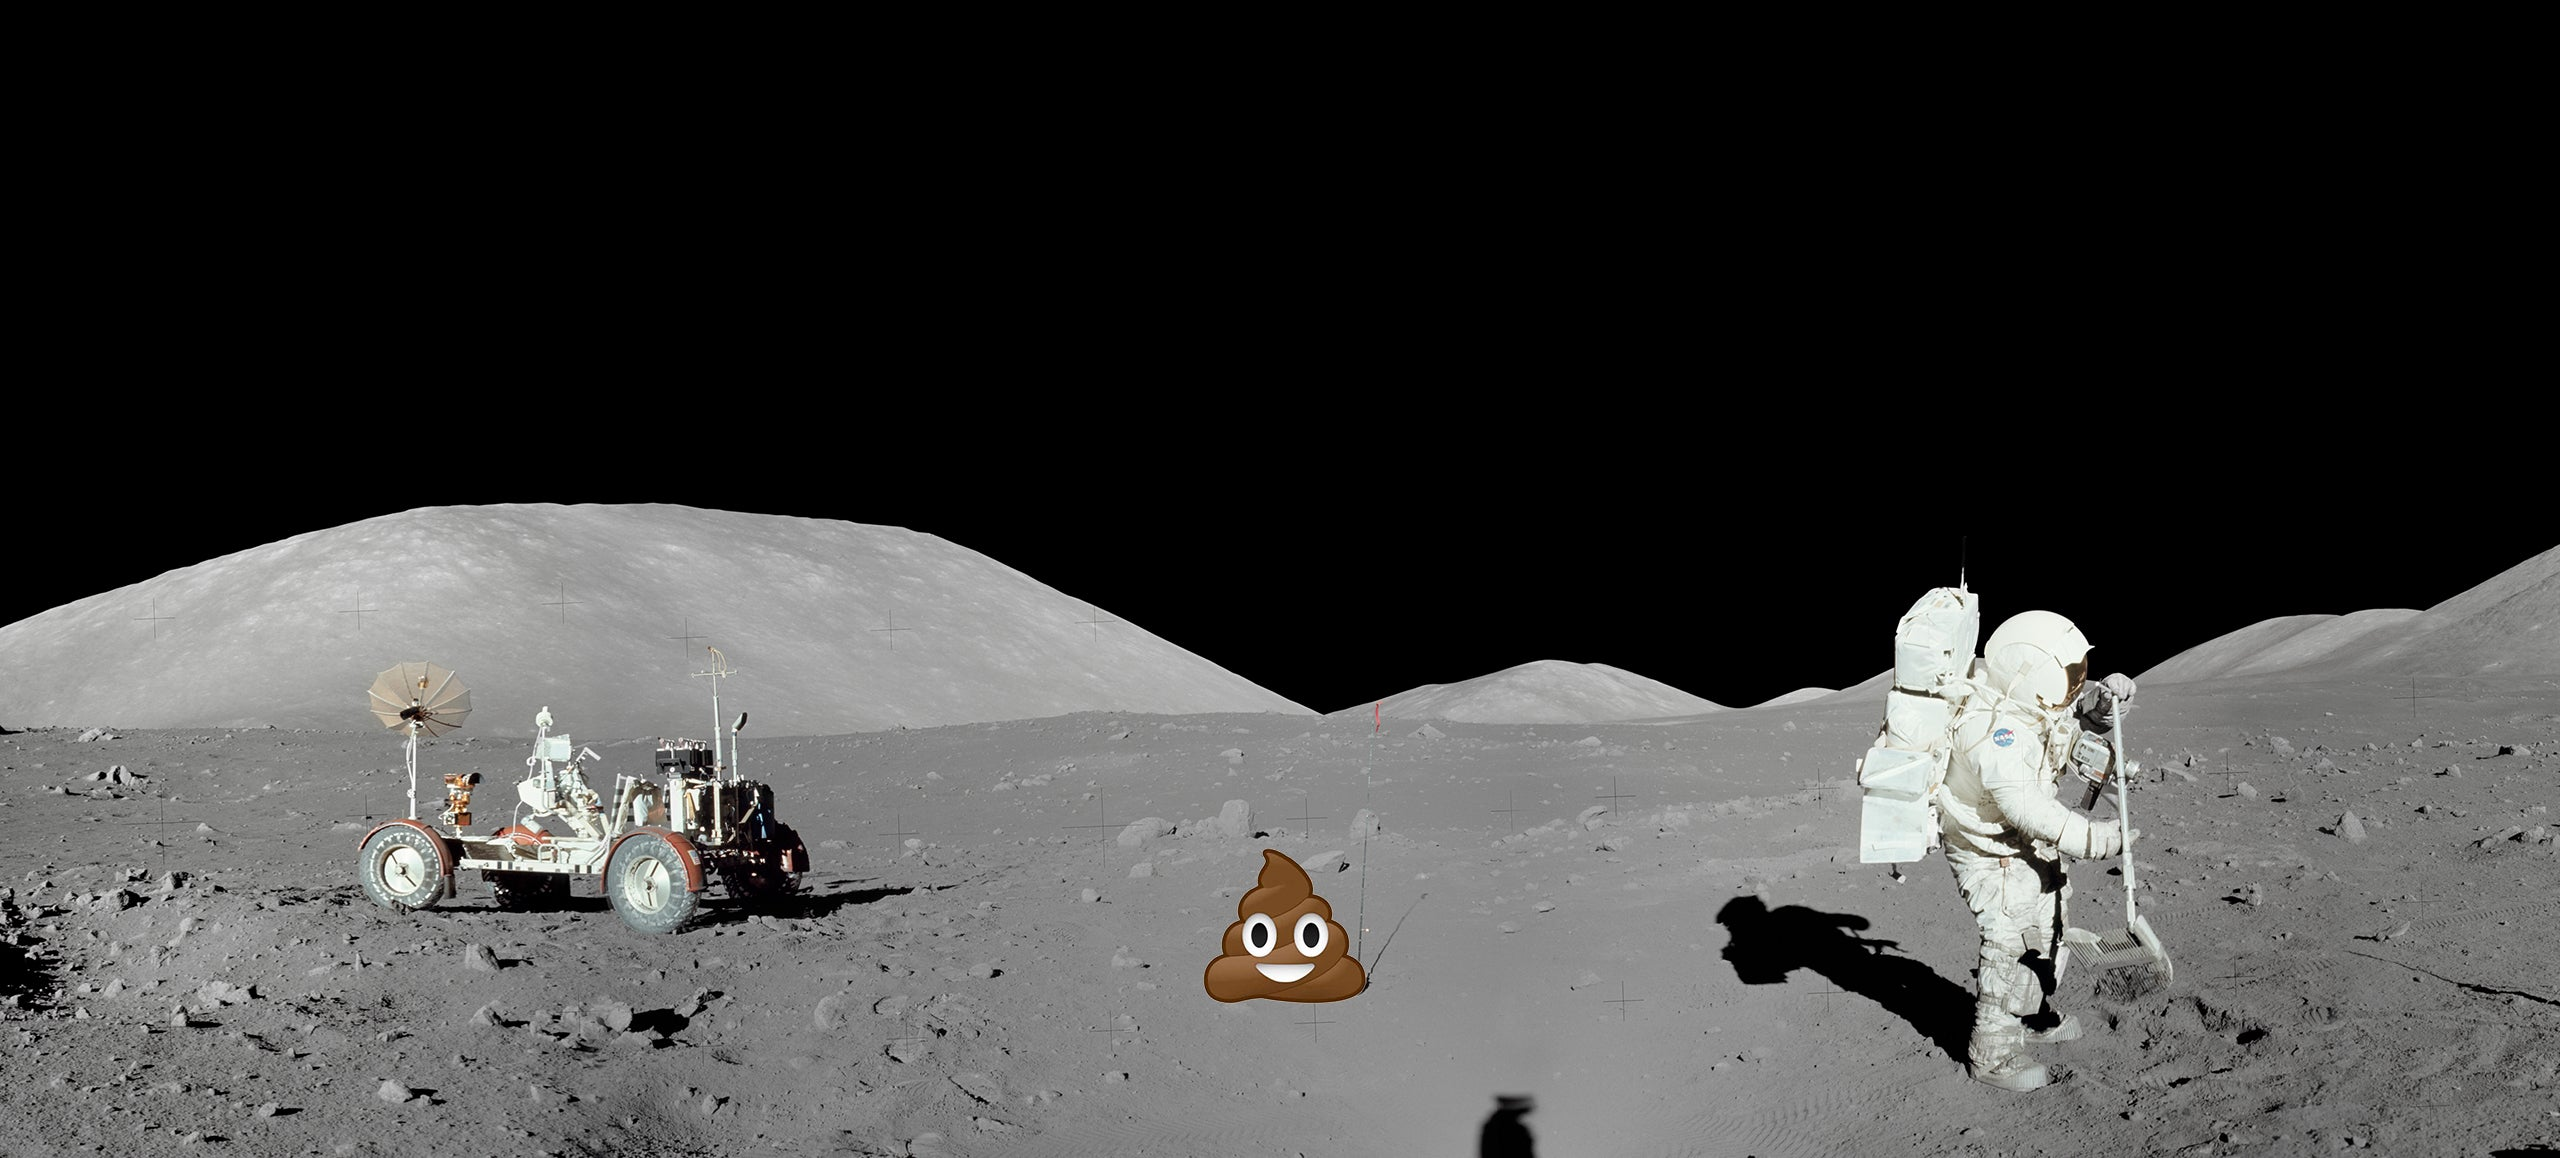 There's Poop on the Moon